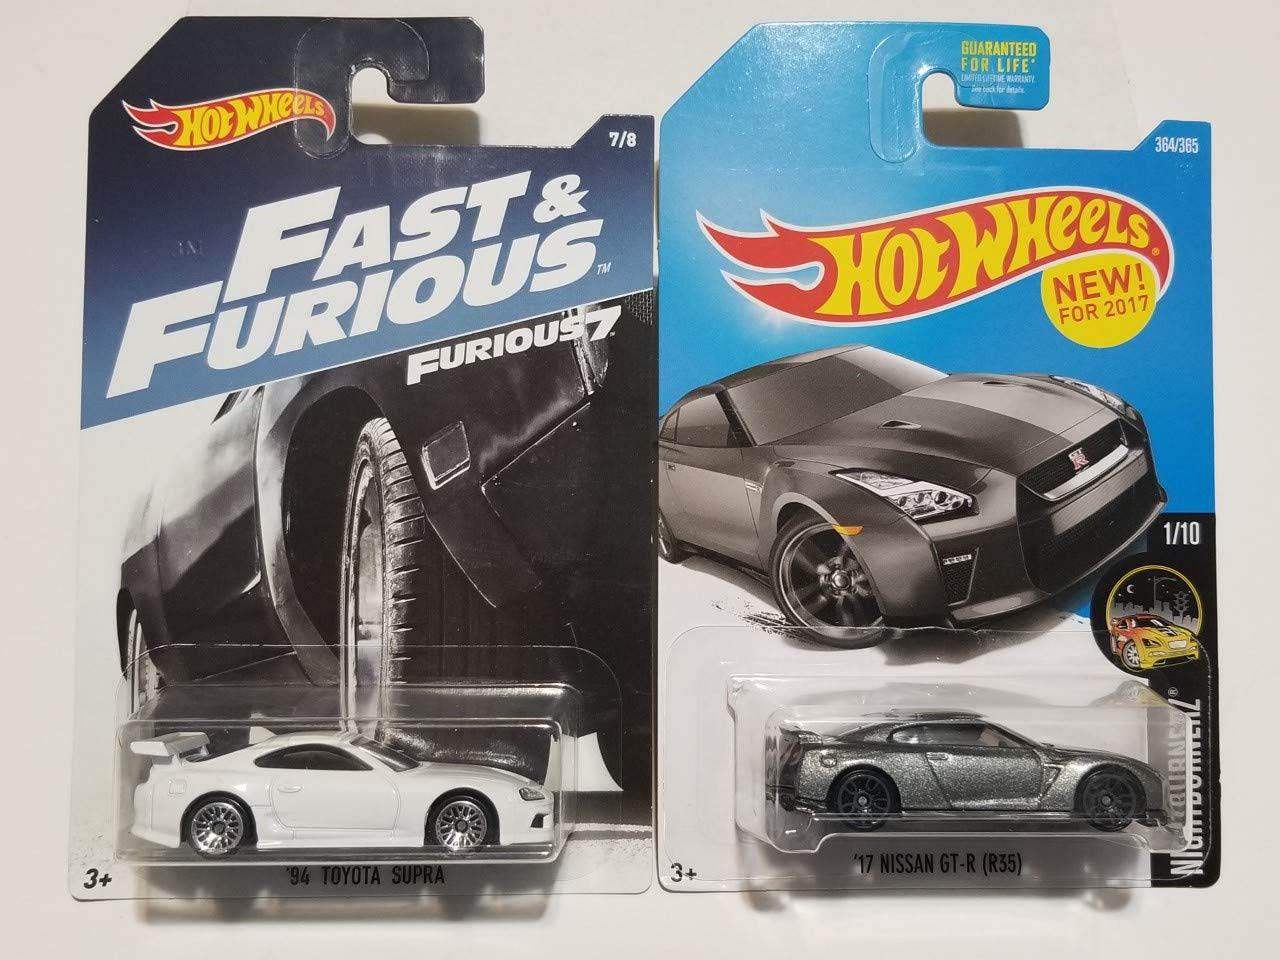 Hot Wheels Fast and Furious Toyota Supra (White) and '17 Nissan GT-R R35 (Grey)